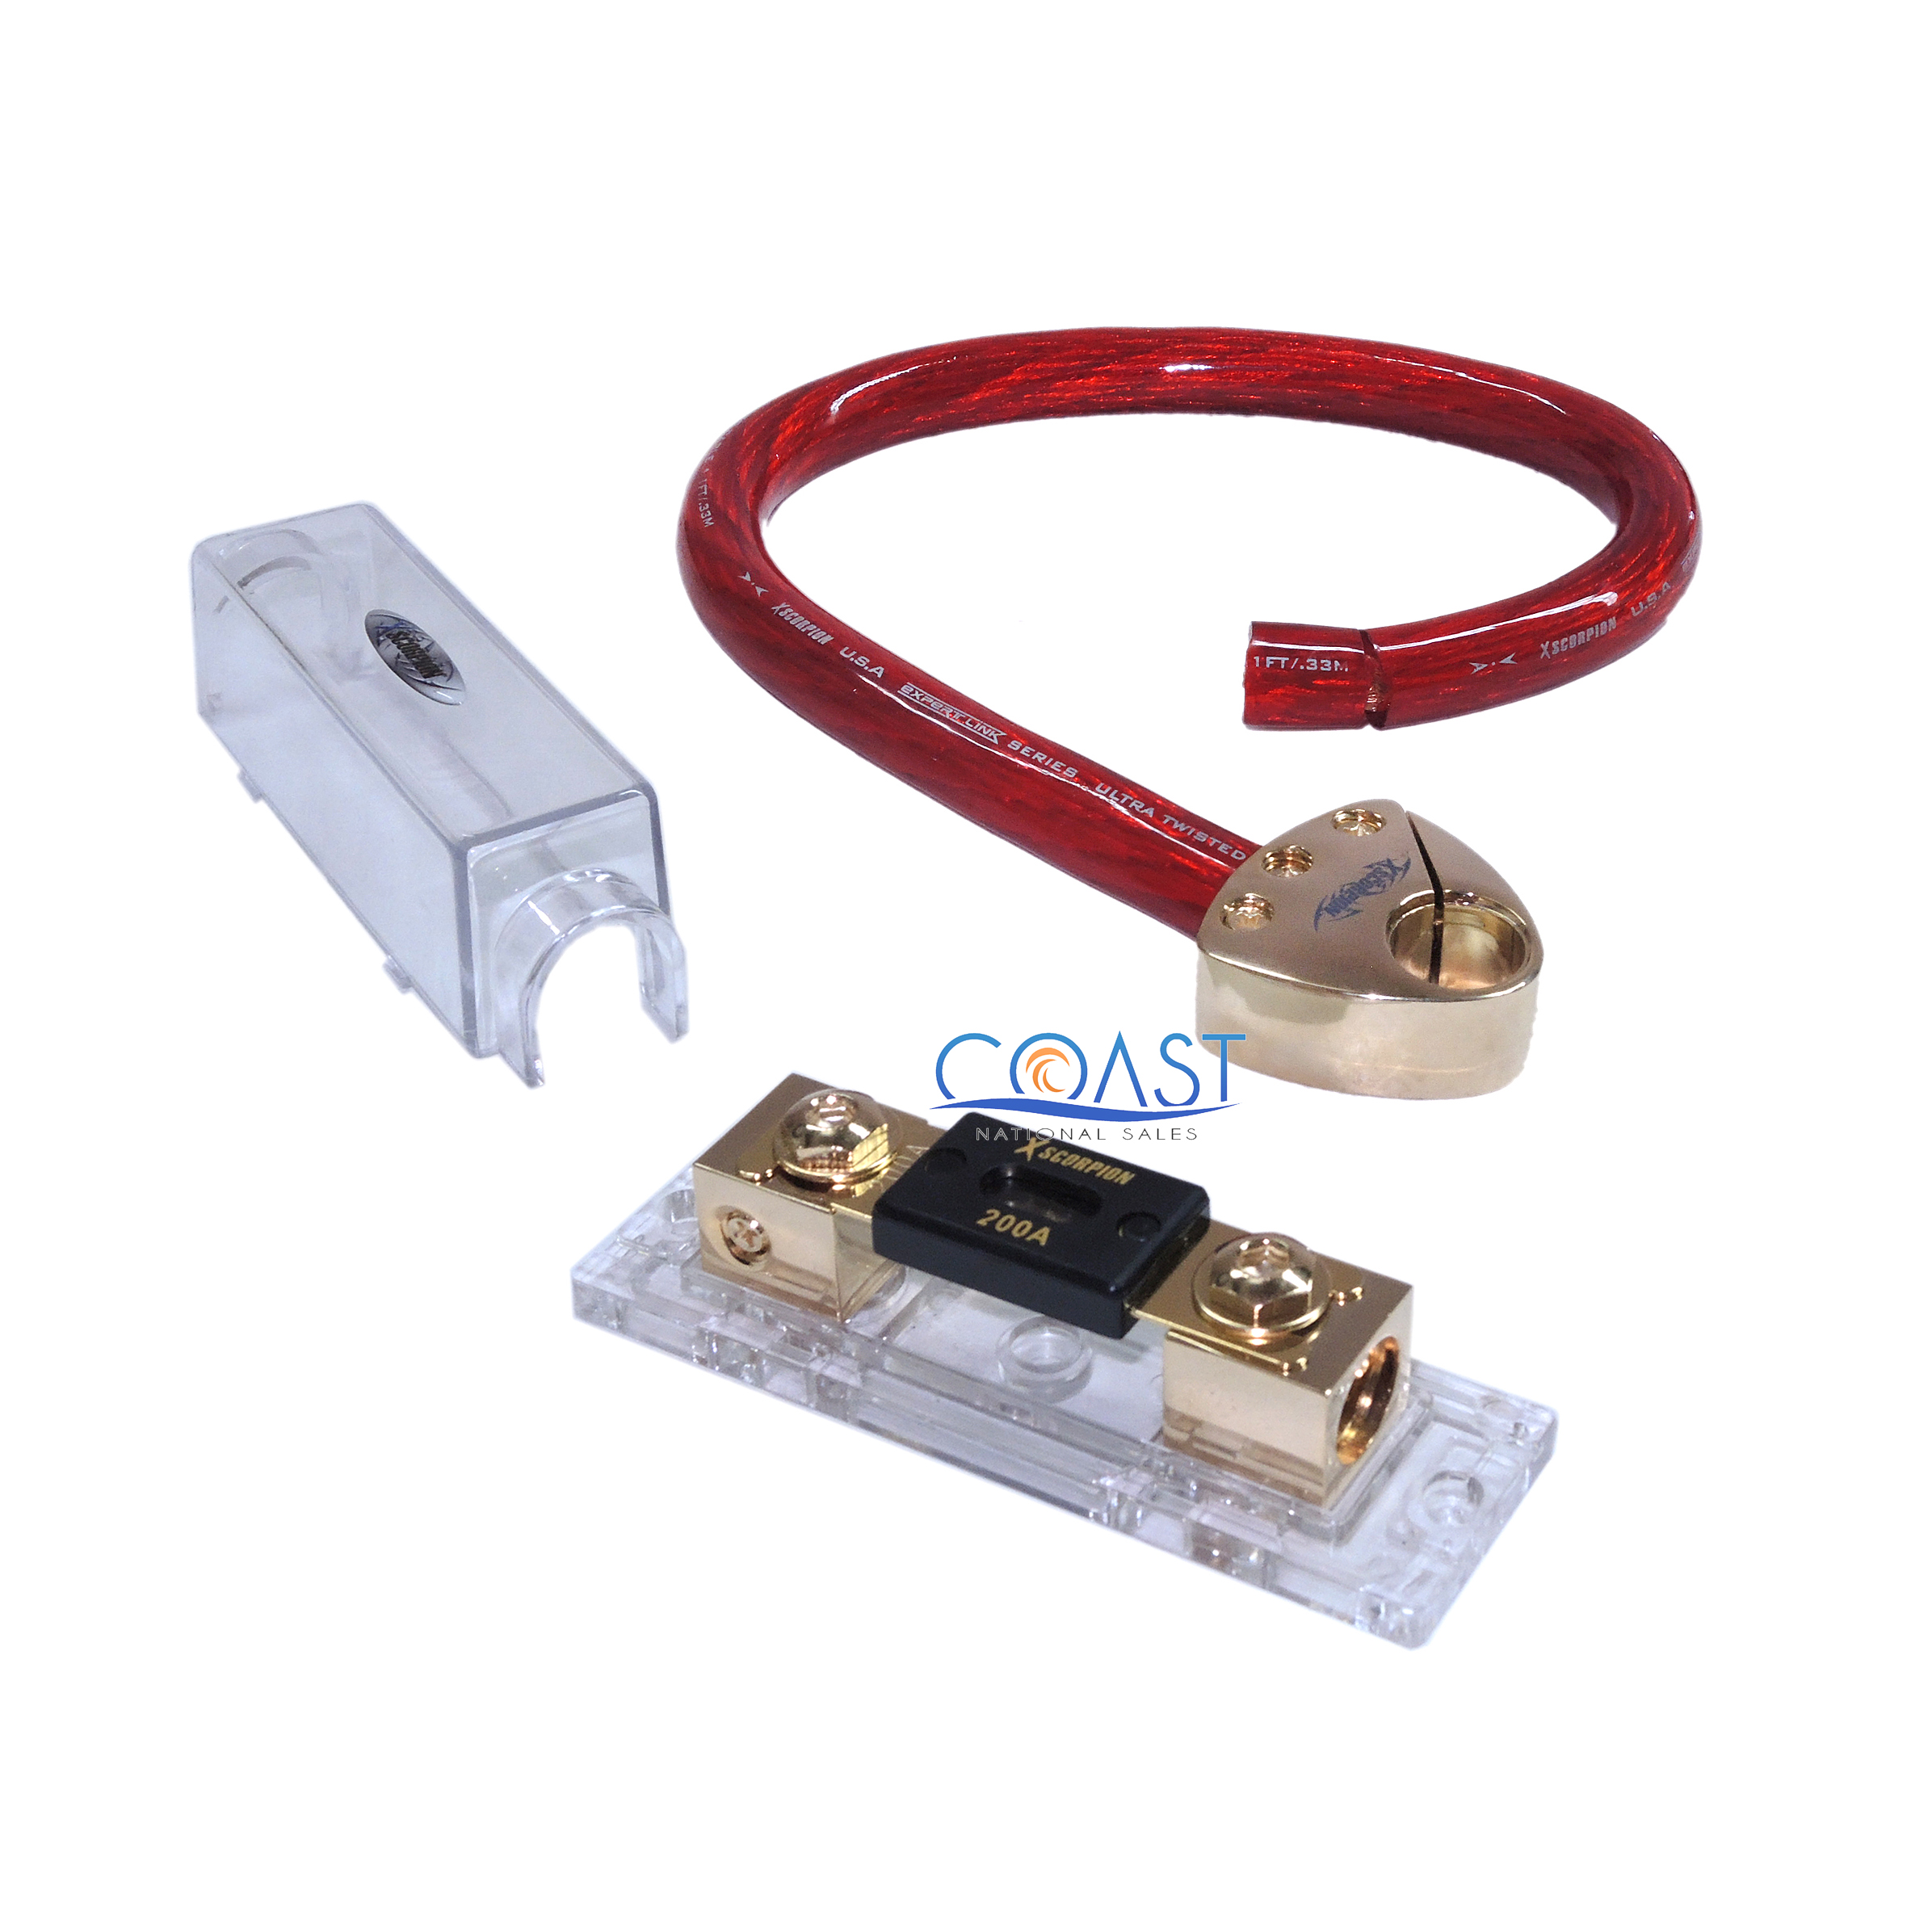 Car Anl In 0 Awg 1 5 Ft Ofc Red Cable Fuse  U0026 Battery Post Kit